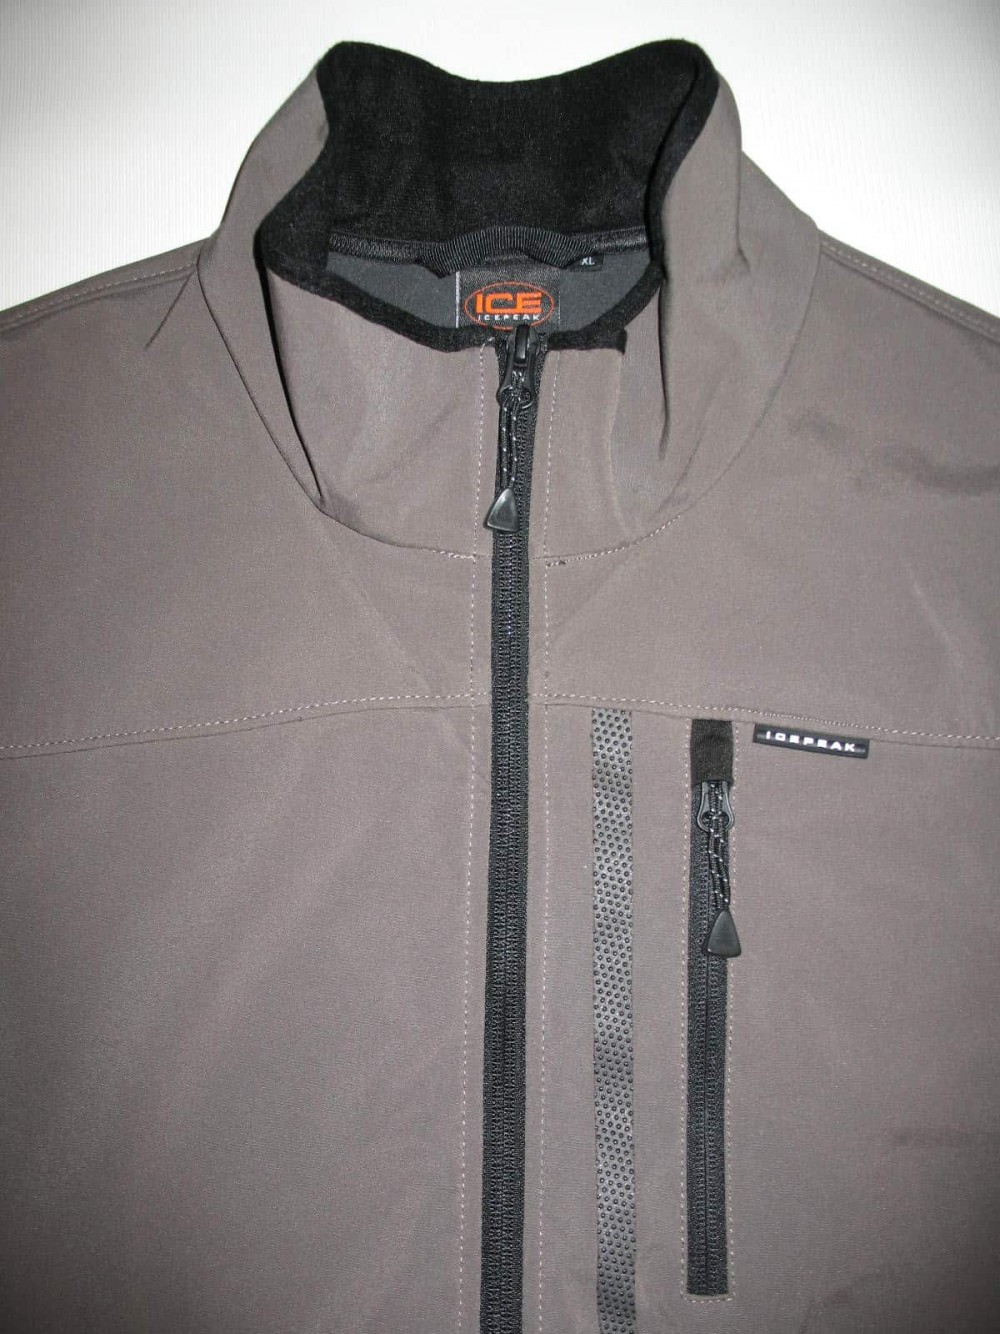 Куртка ICEPEAK softshell jacket (размер XL) - 2